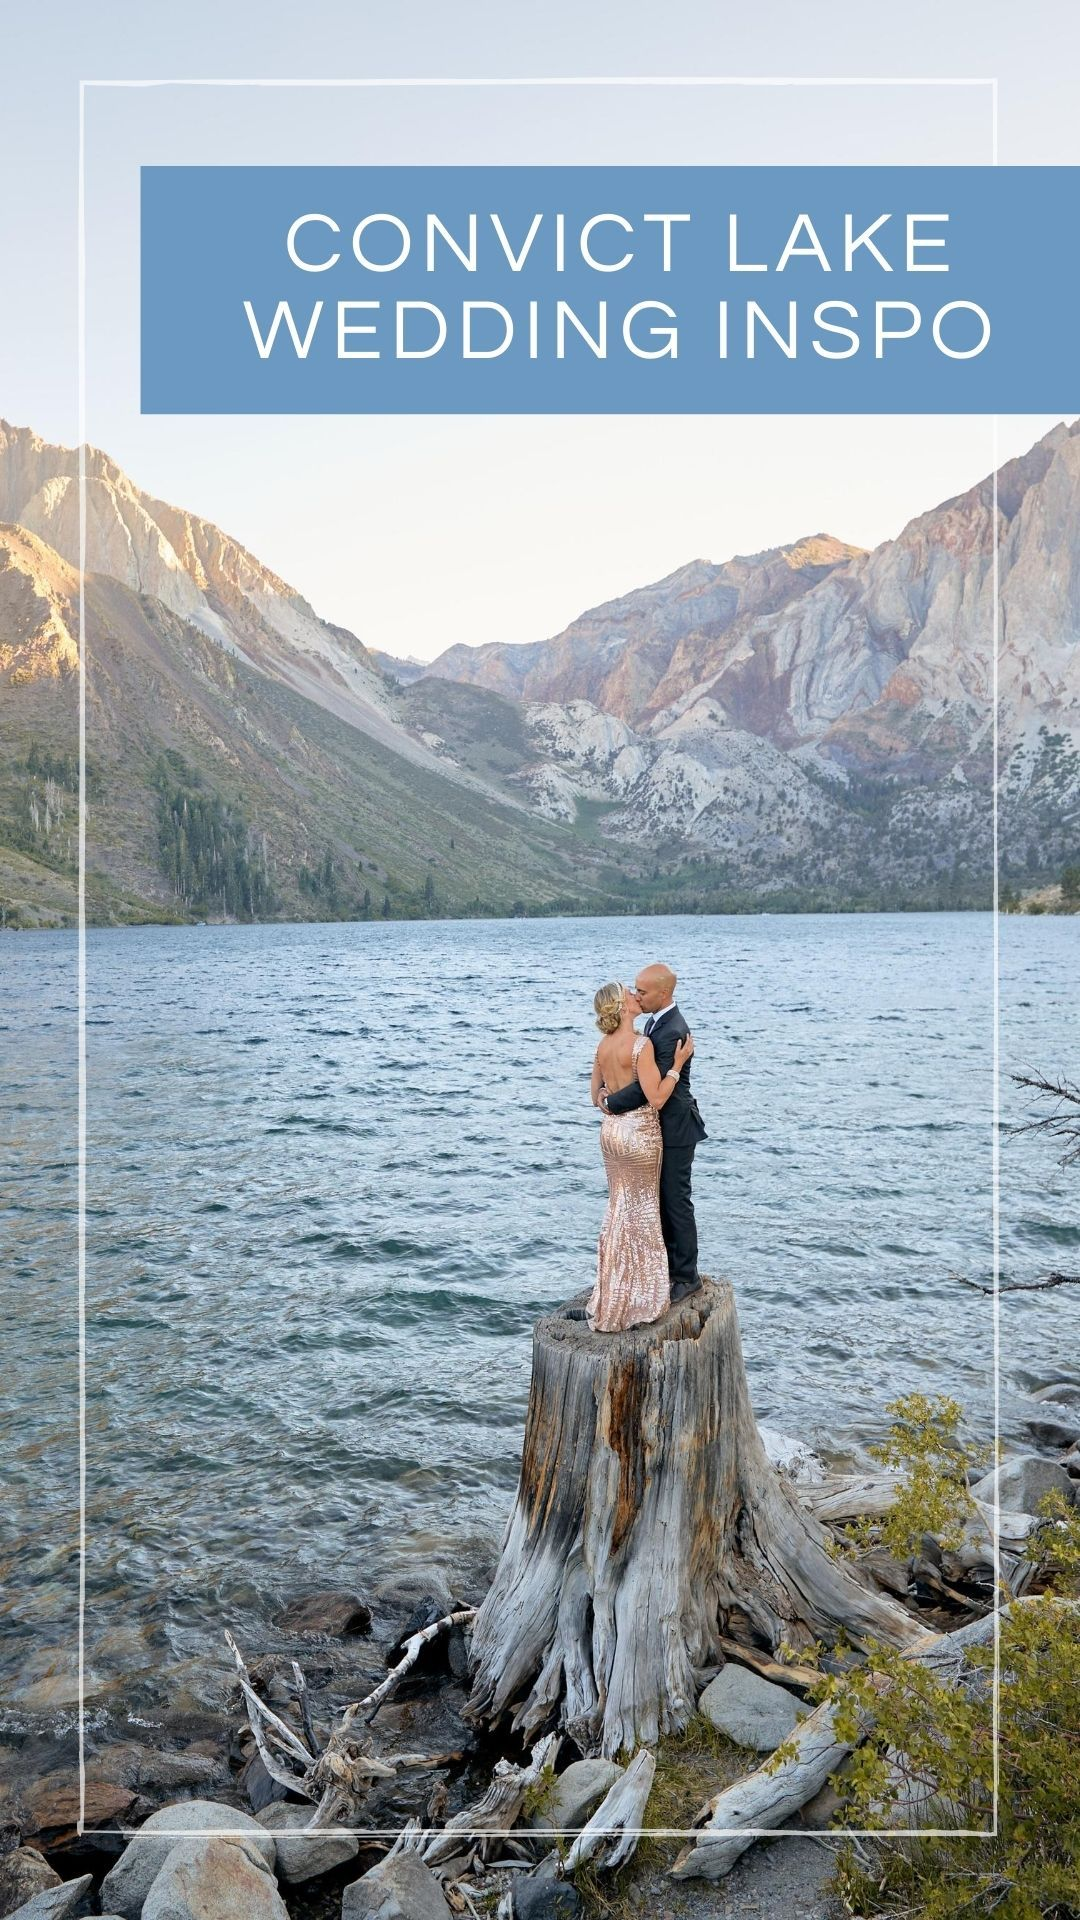 Convict lake wedding elopement inspiration in 2020